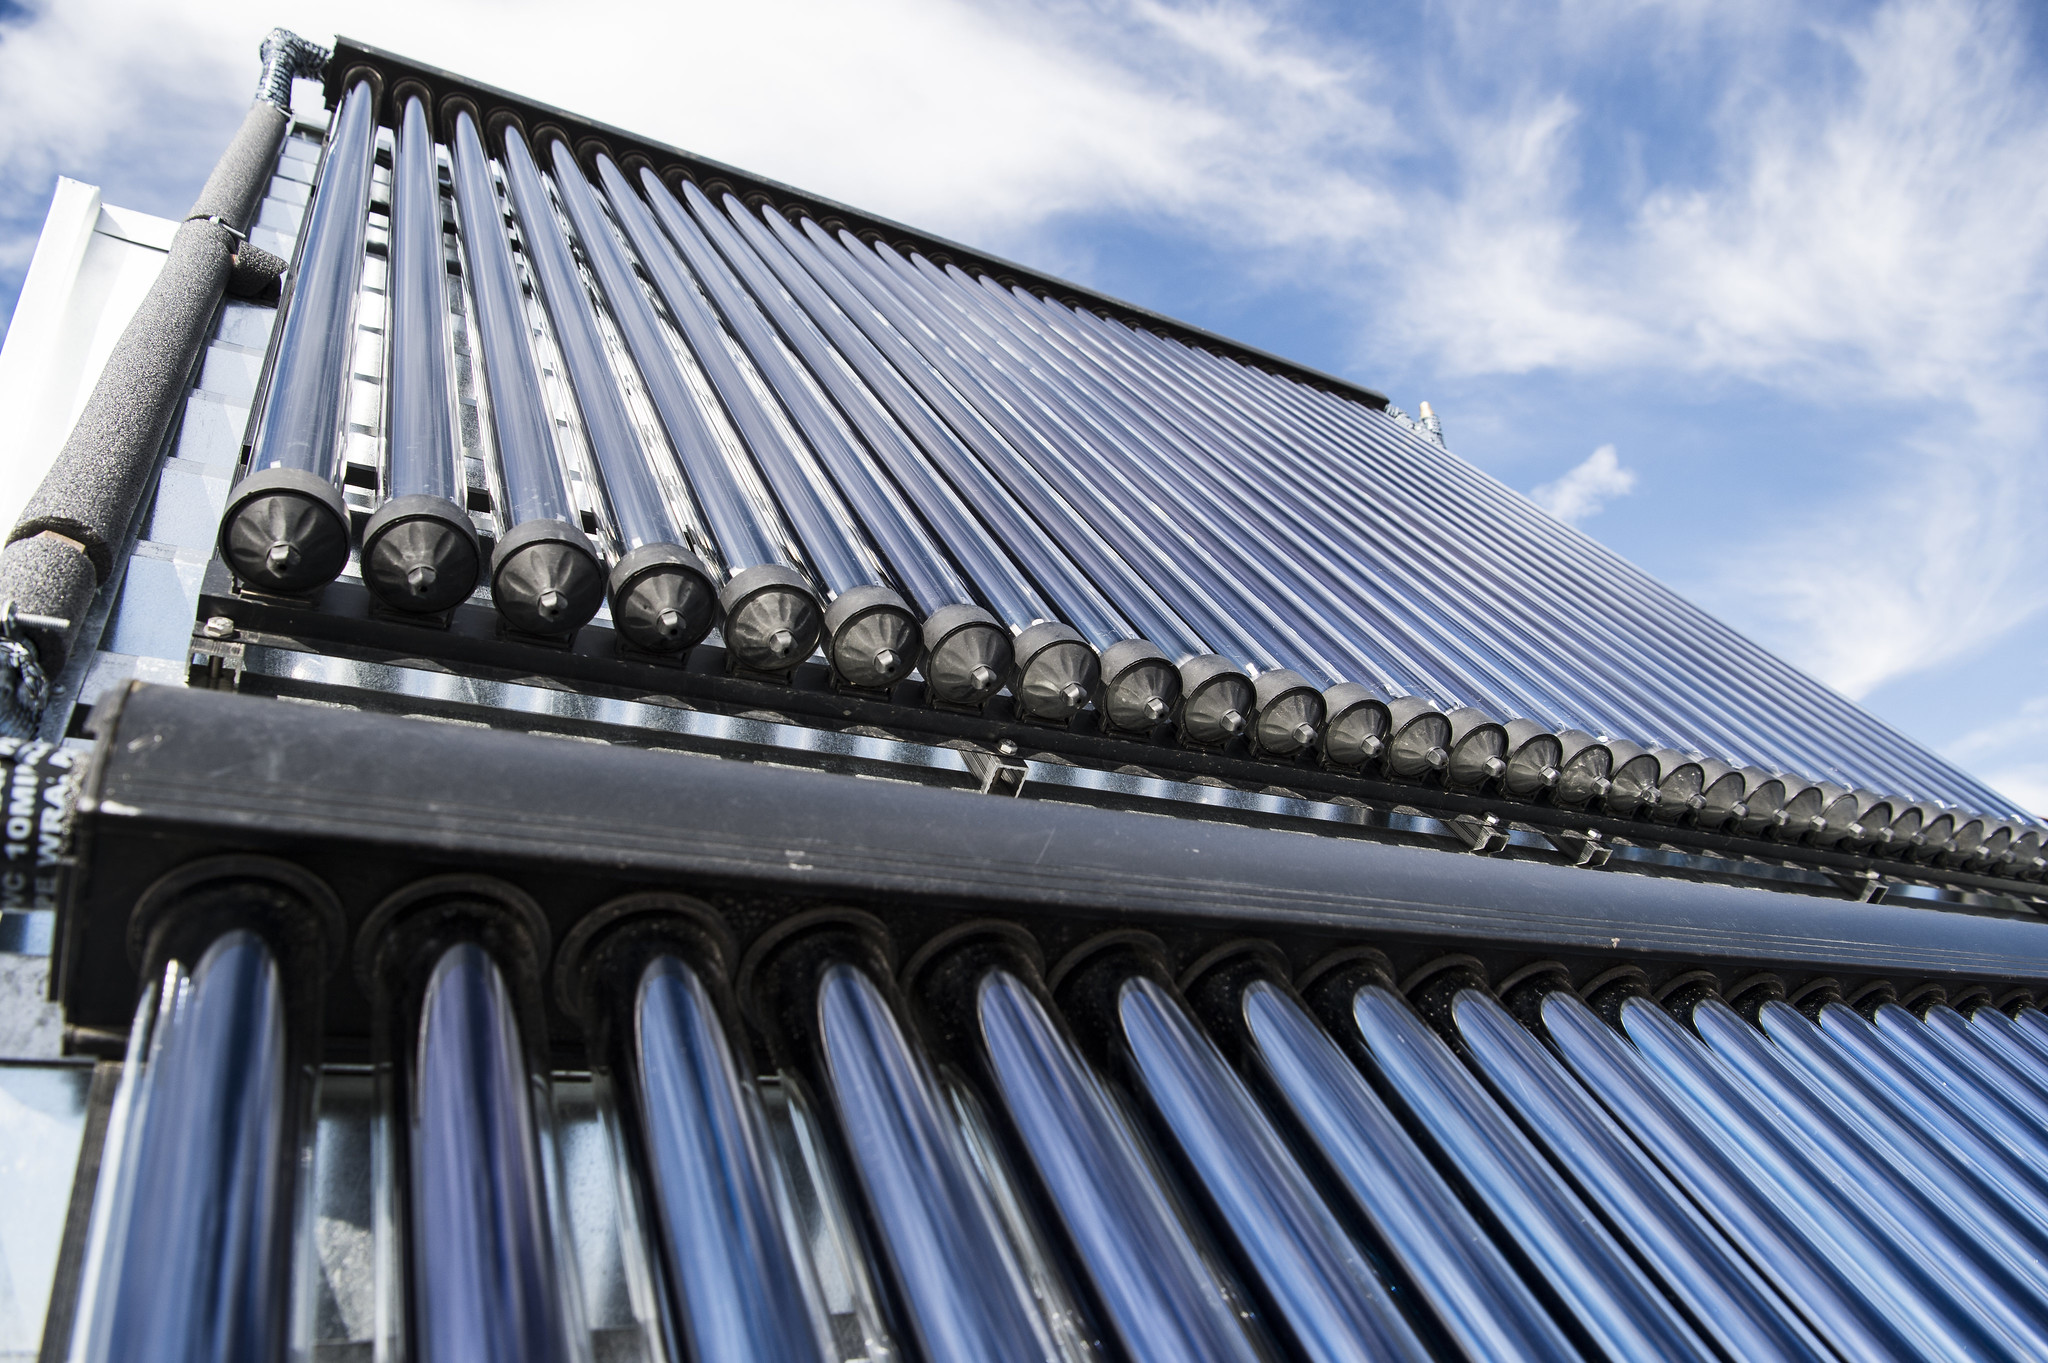 Close up of solar hot water system